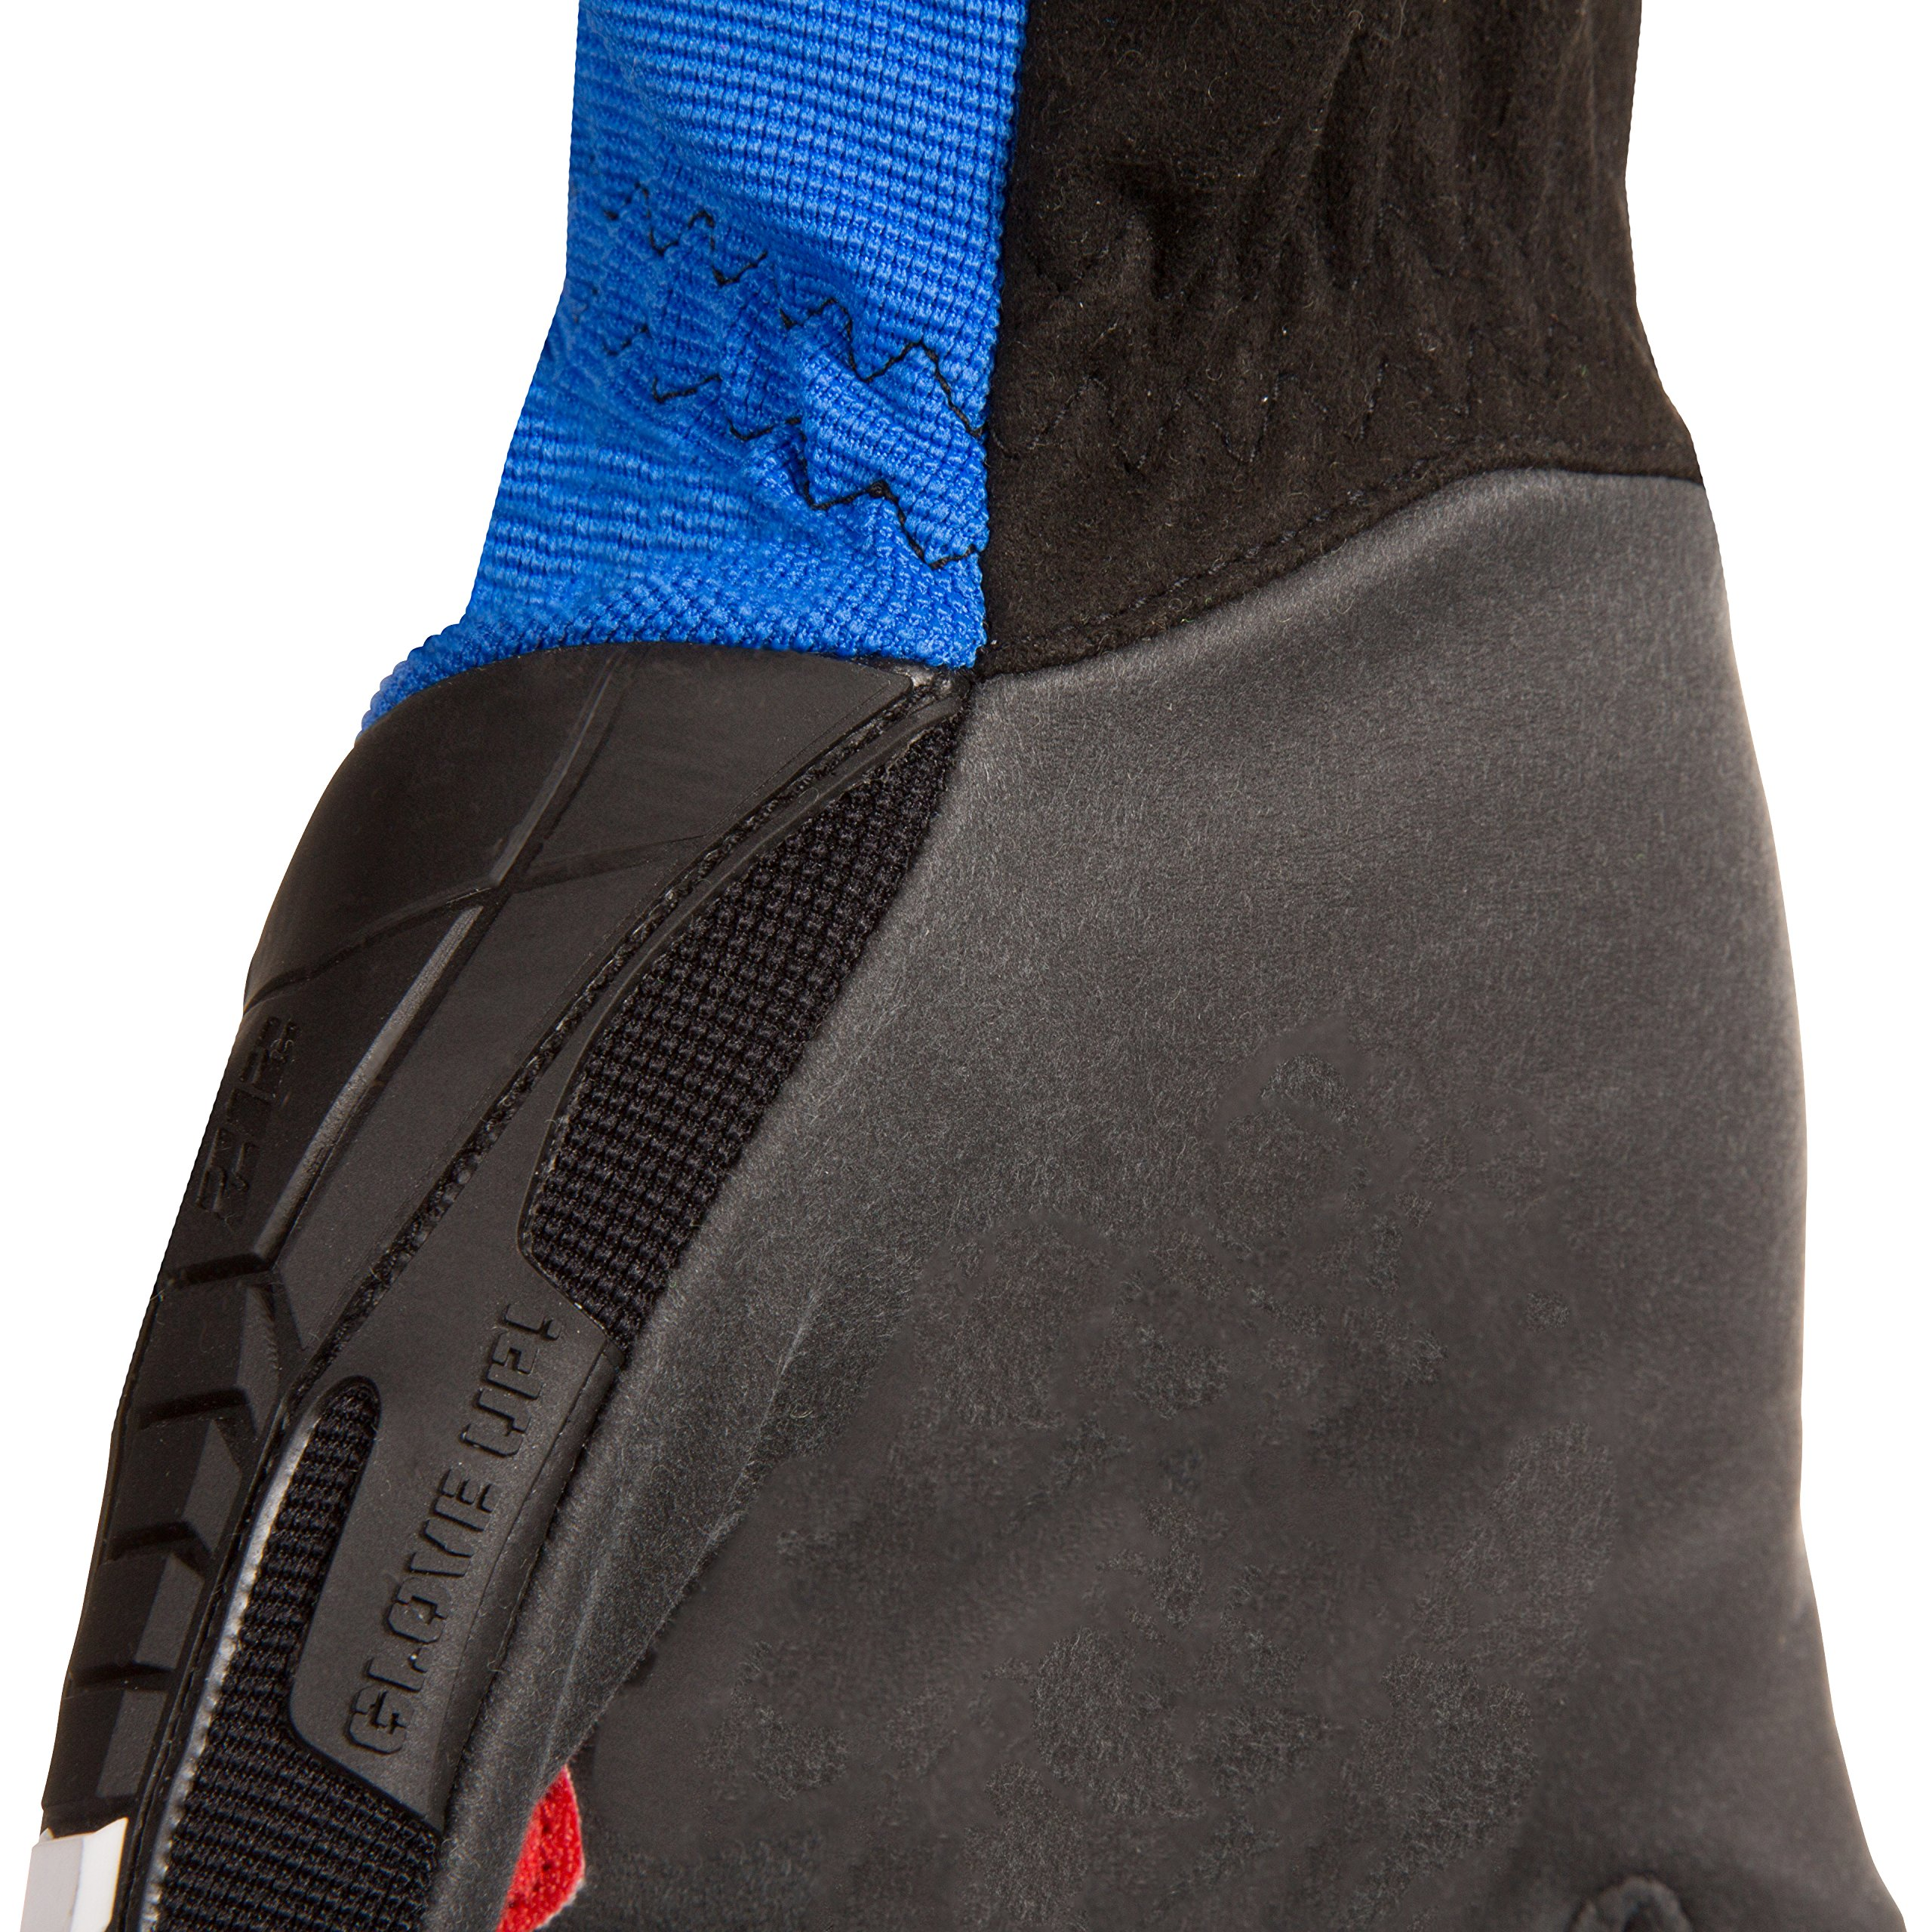 212 Performance Gloves IMPC2W-03-010 Impact Cut Resistant Winter Work Glove (EN Level 2, ANSI A2), Large by 212 Performance Gloves (Image #6)